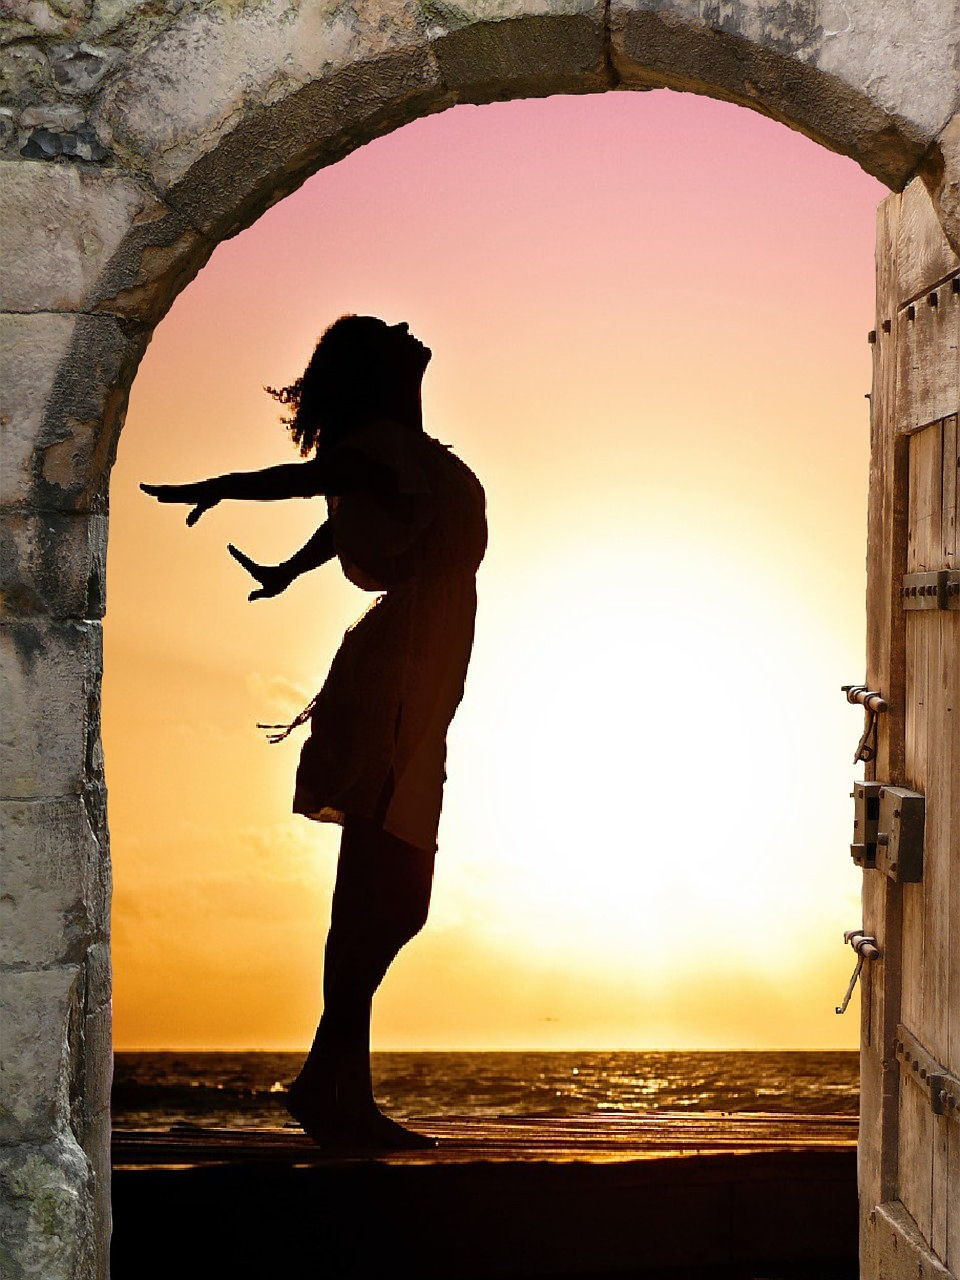 goal-shadow girl in sunset doorway